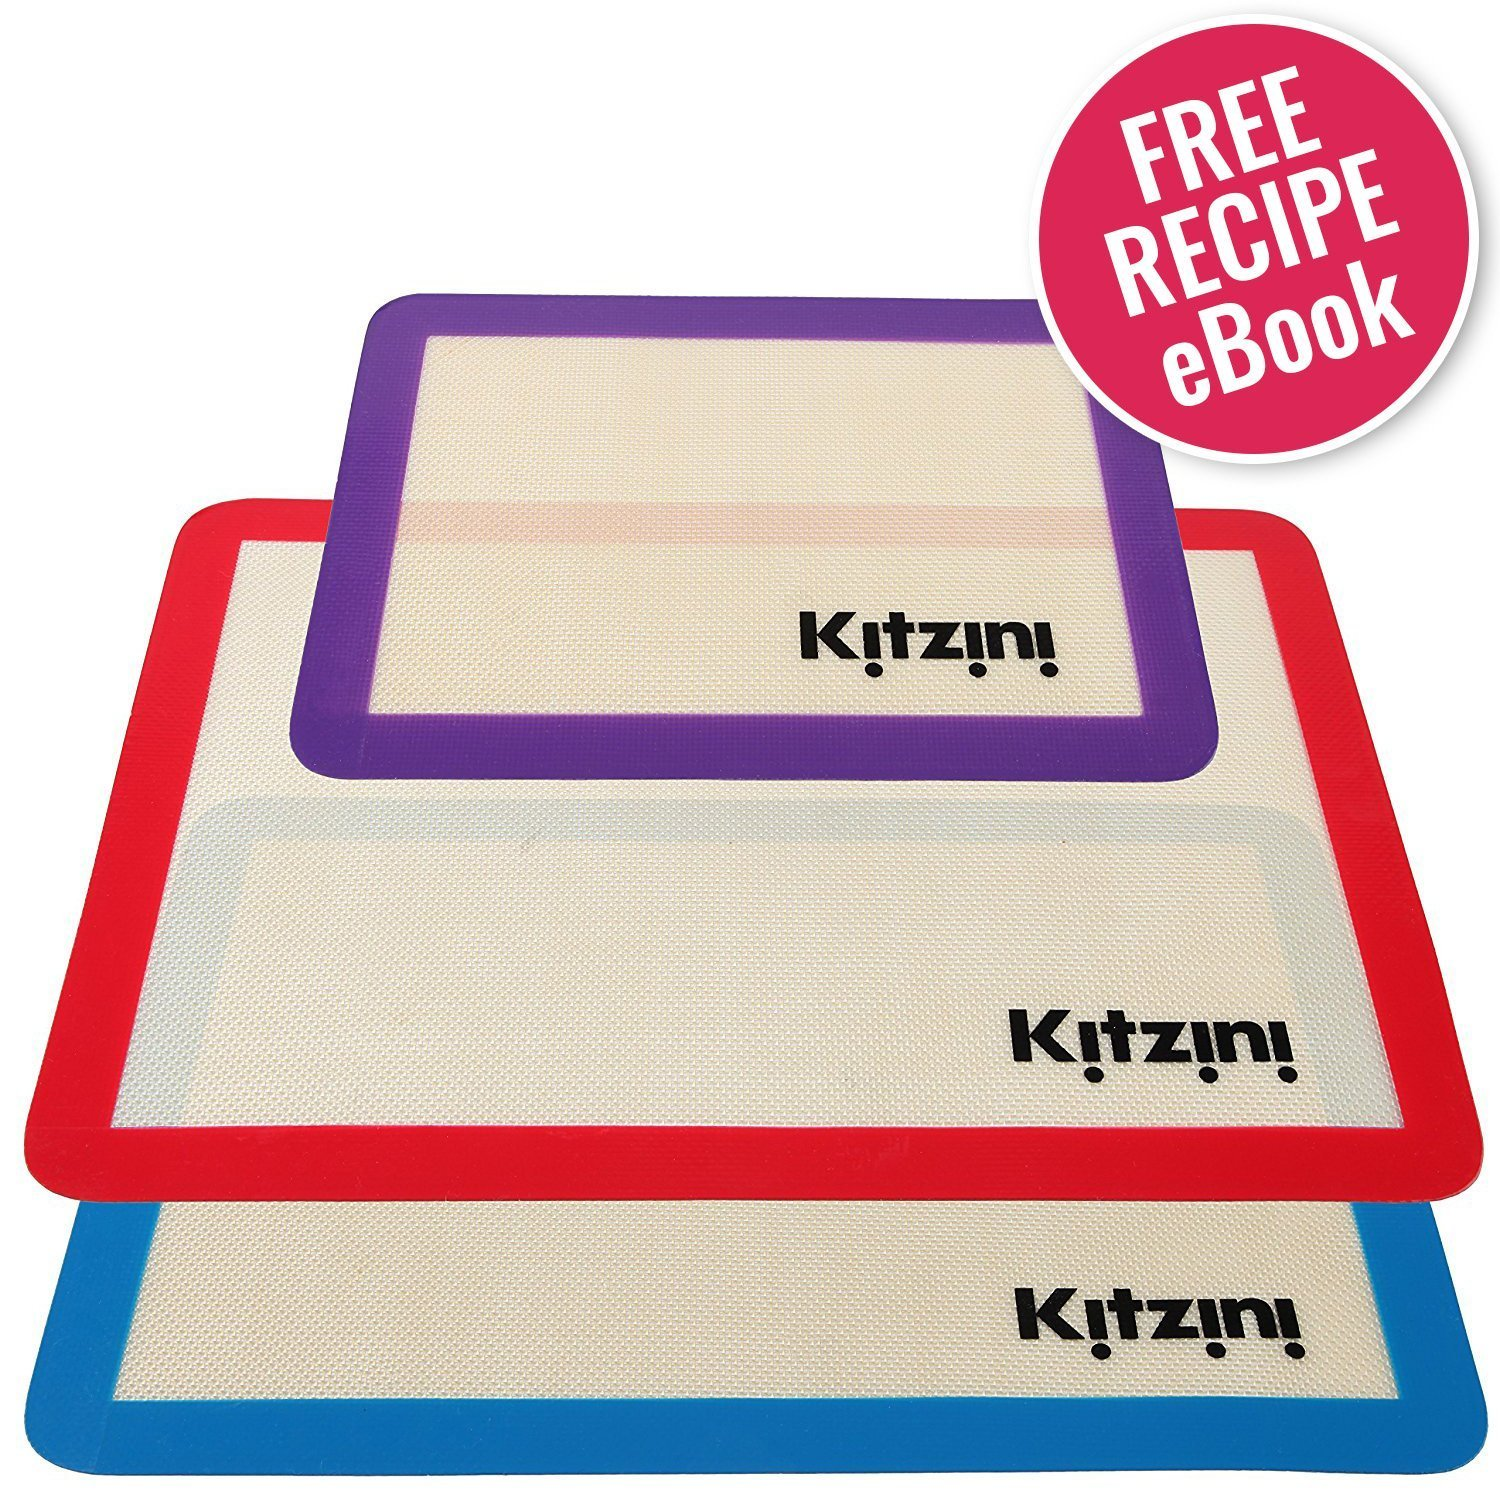 Silicone Baking Mat Set of 3 - Nonstick - Two Half Sheet Mats (16.5